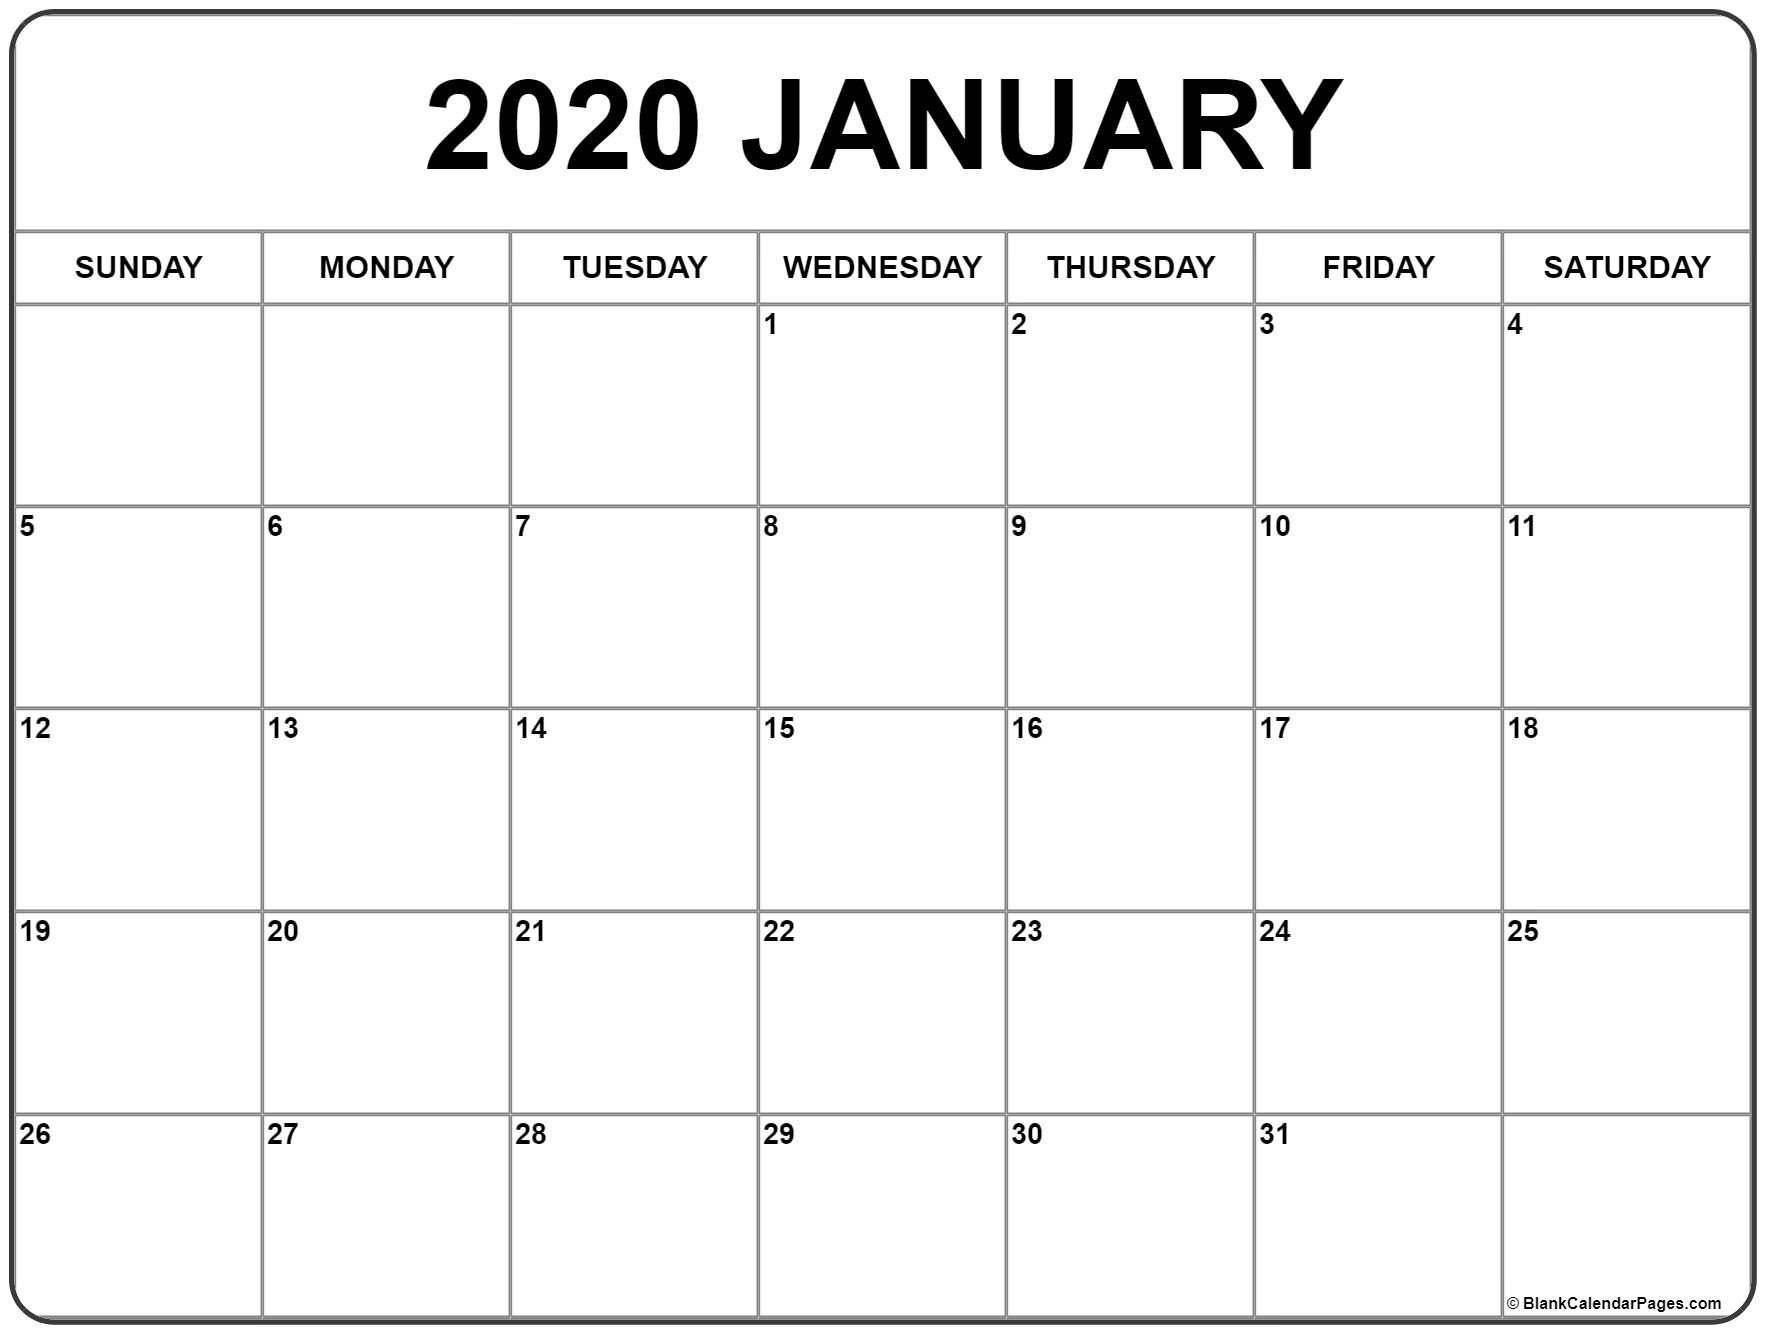 January 2020 Calendar | Free Printable Monthly Calendars Remarkable Free Printable Calendars Without Weekends